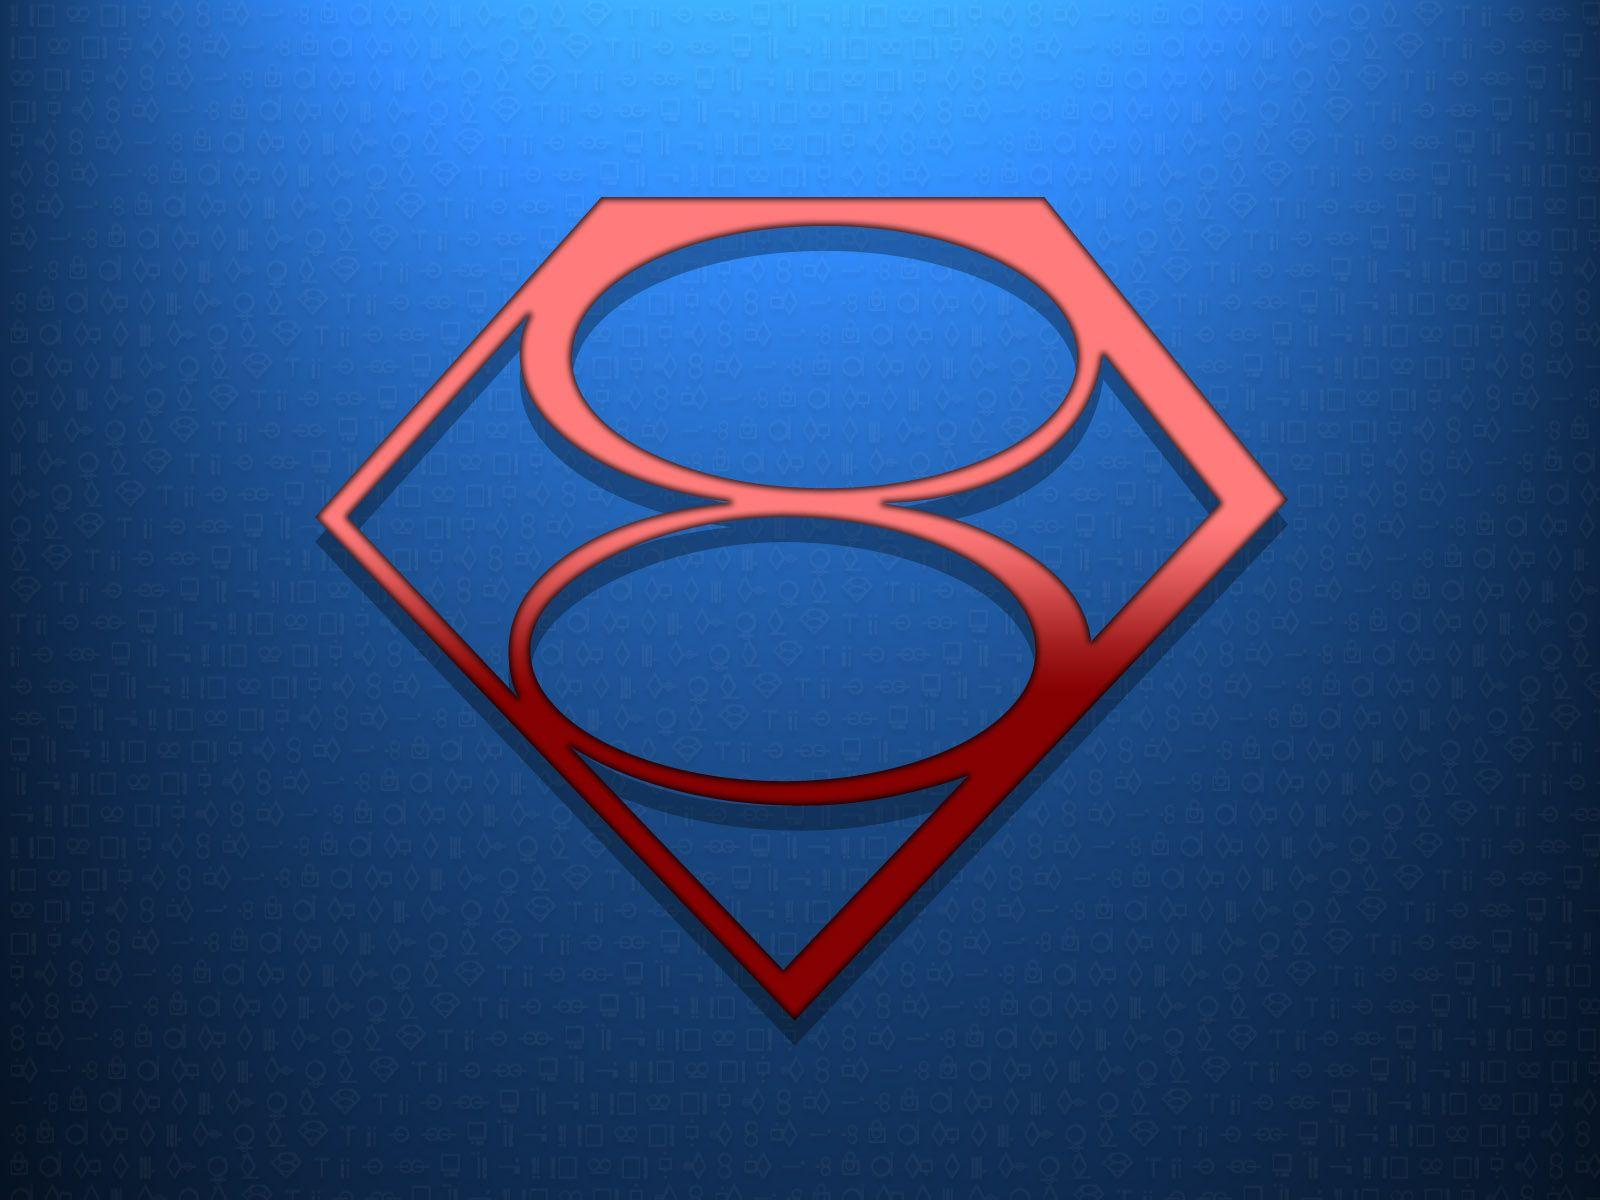 Wallpaper] Superman Logo